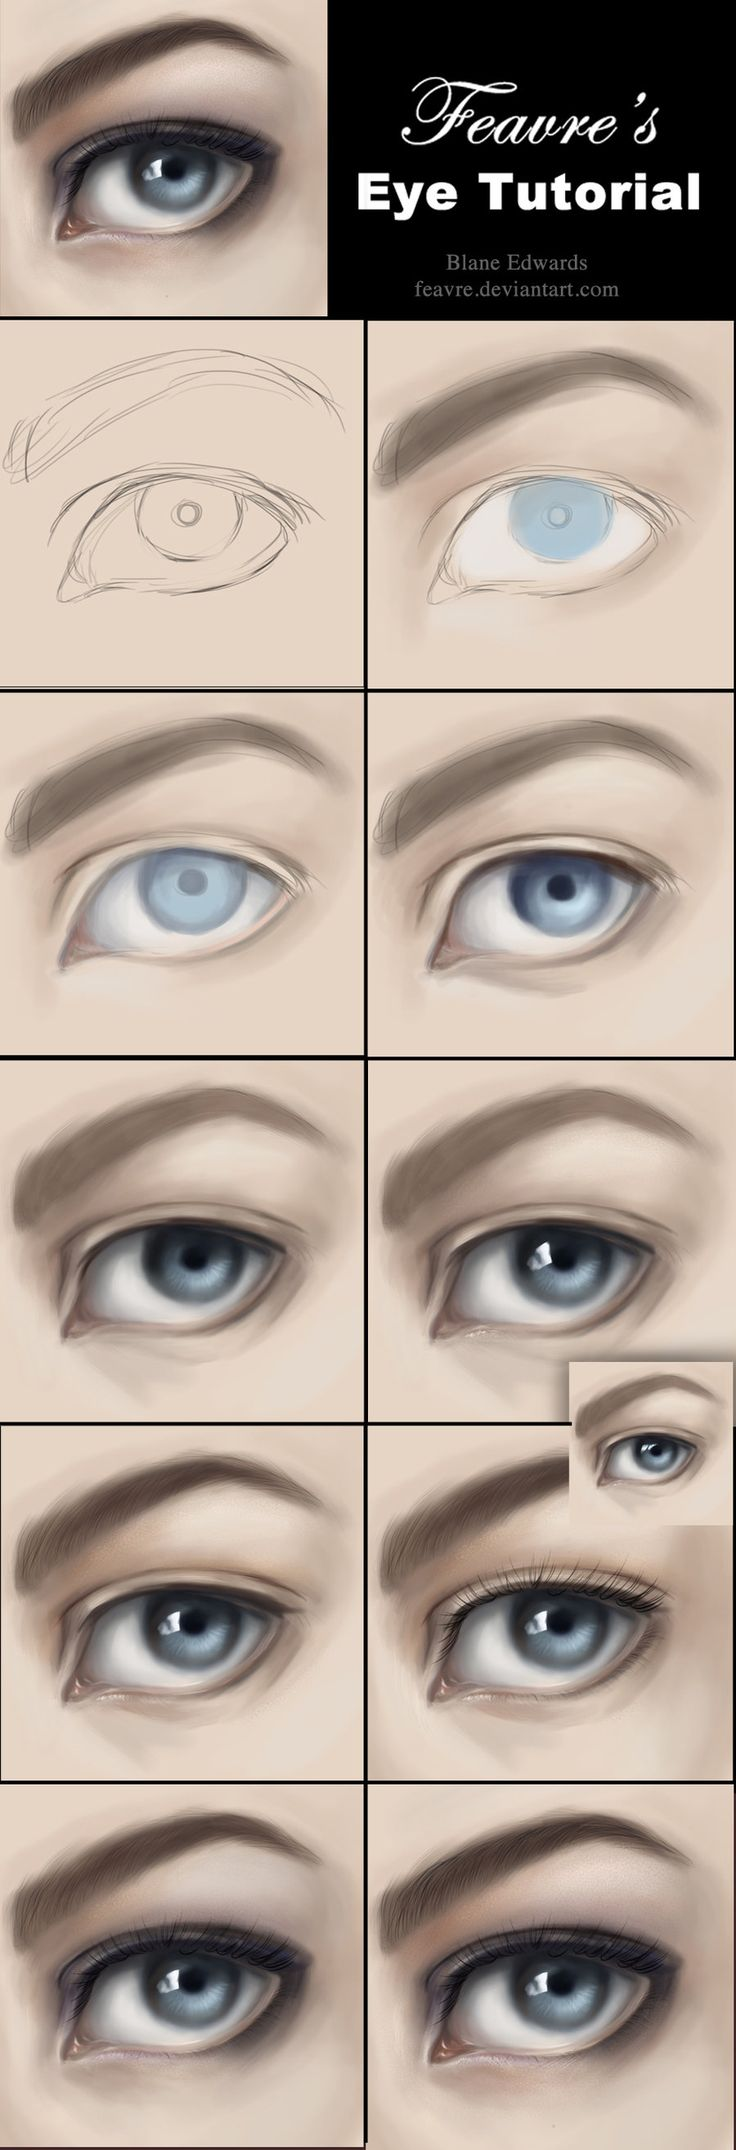 How to Paint Realistic Eyes Tutorial